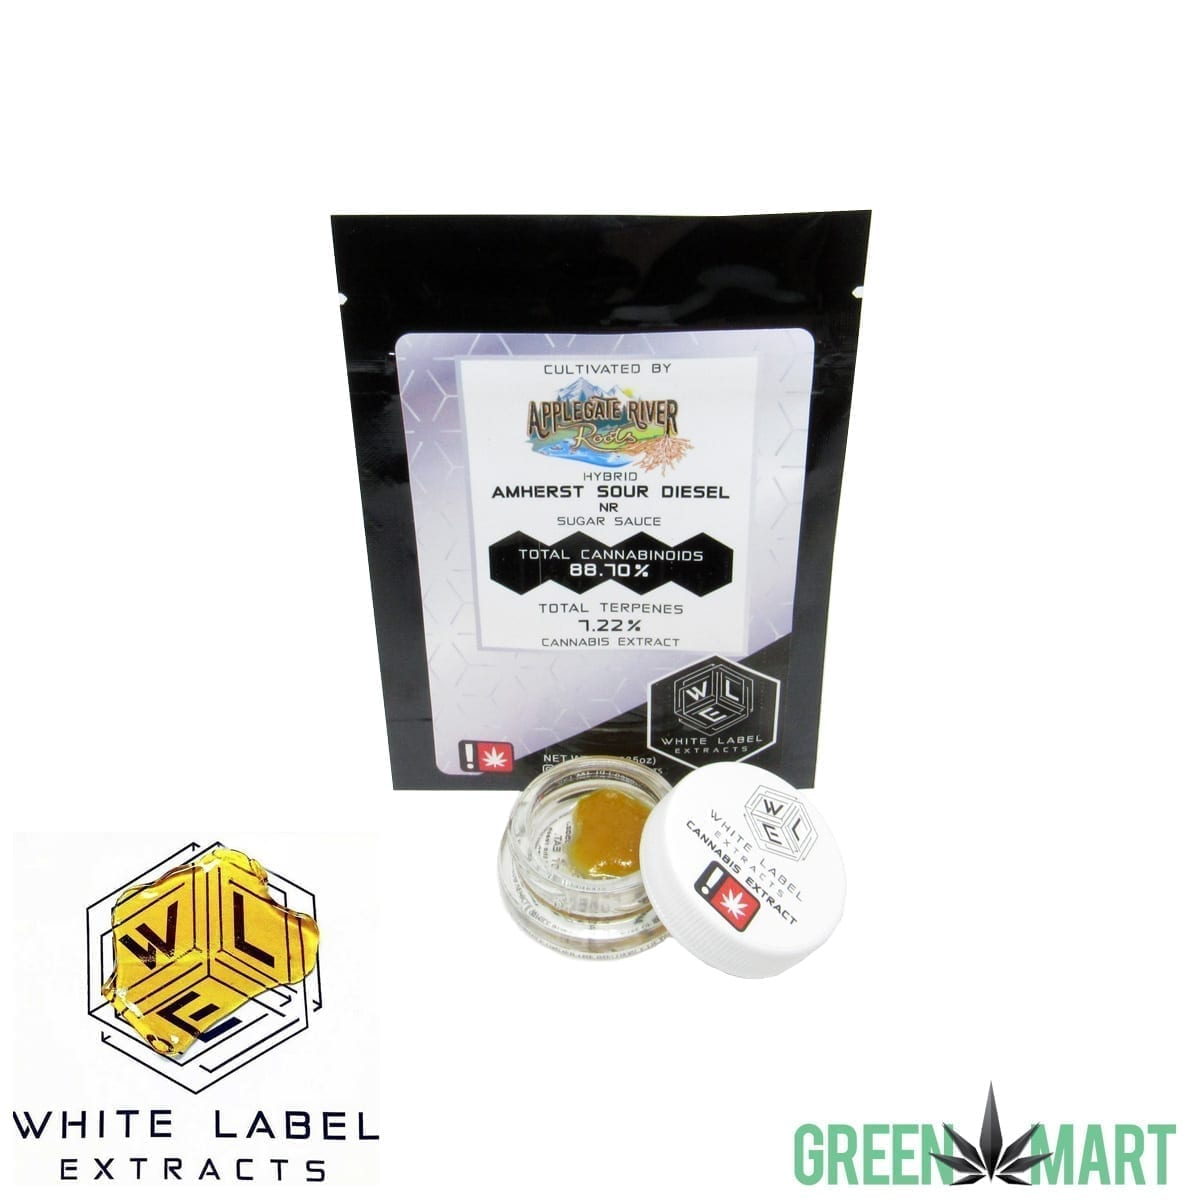 White Label Extracts - Amherst Sour Diesel